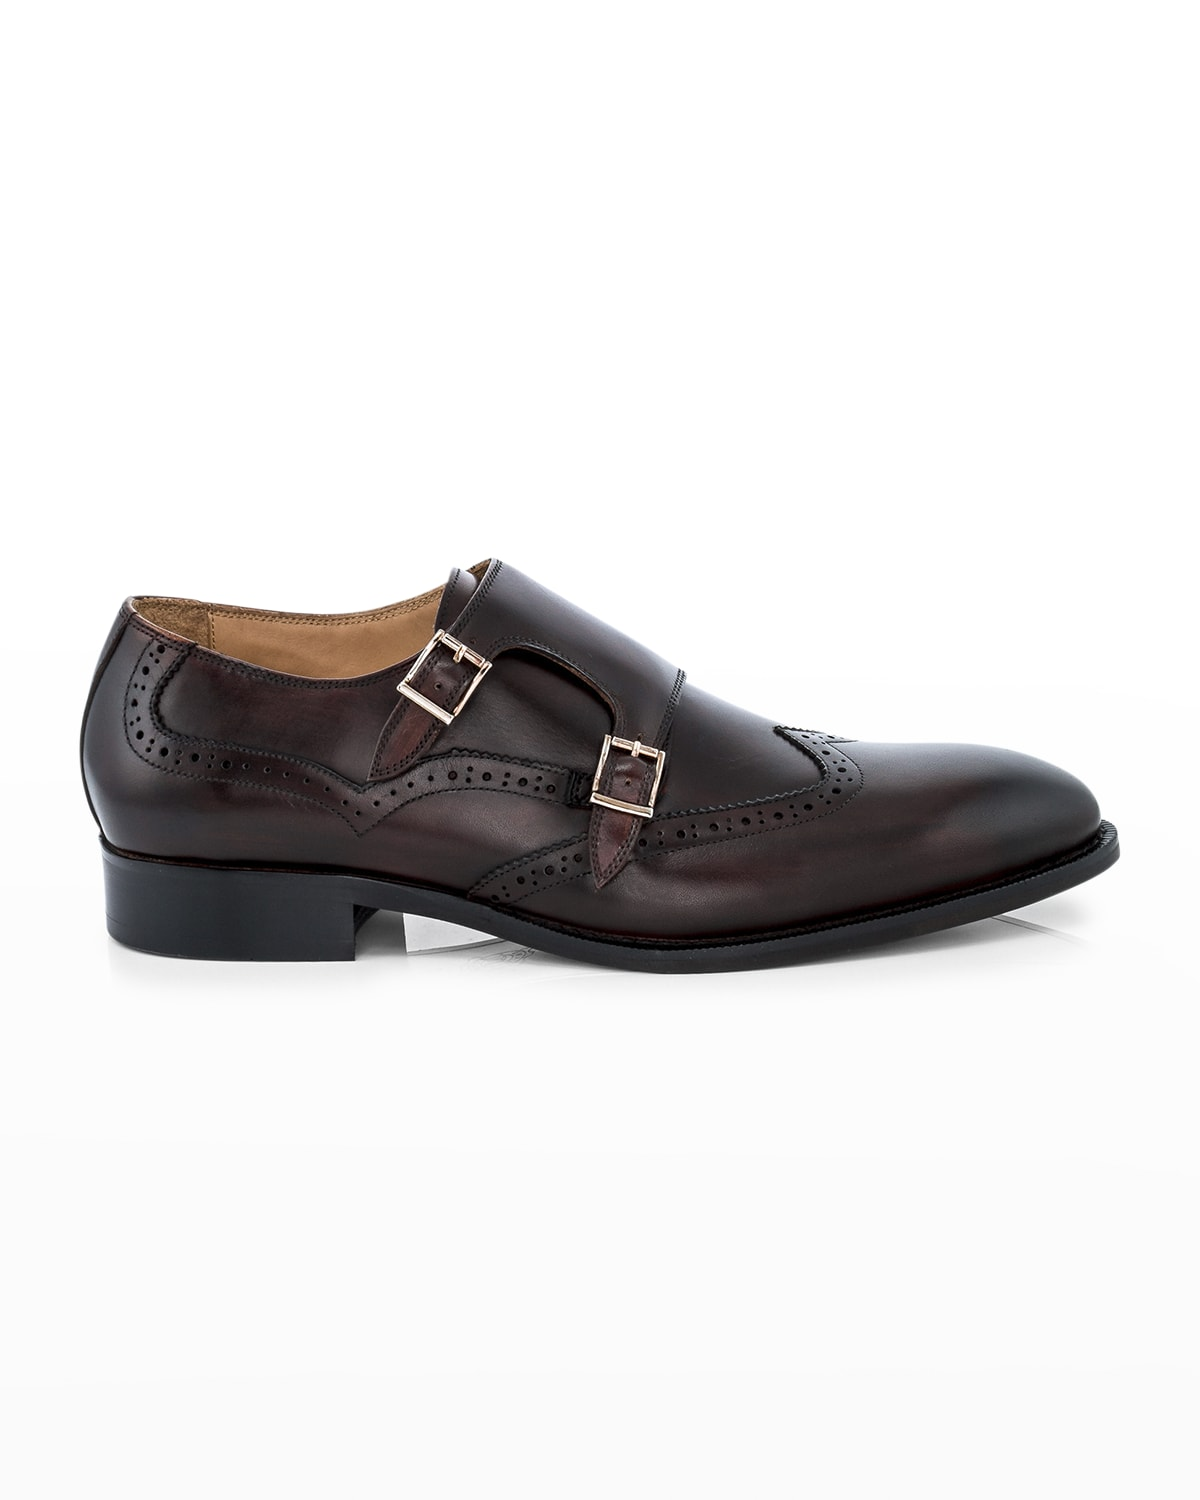 Men's Easton Double-Monk Strap Leather Loafers